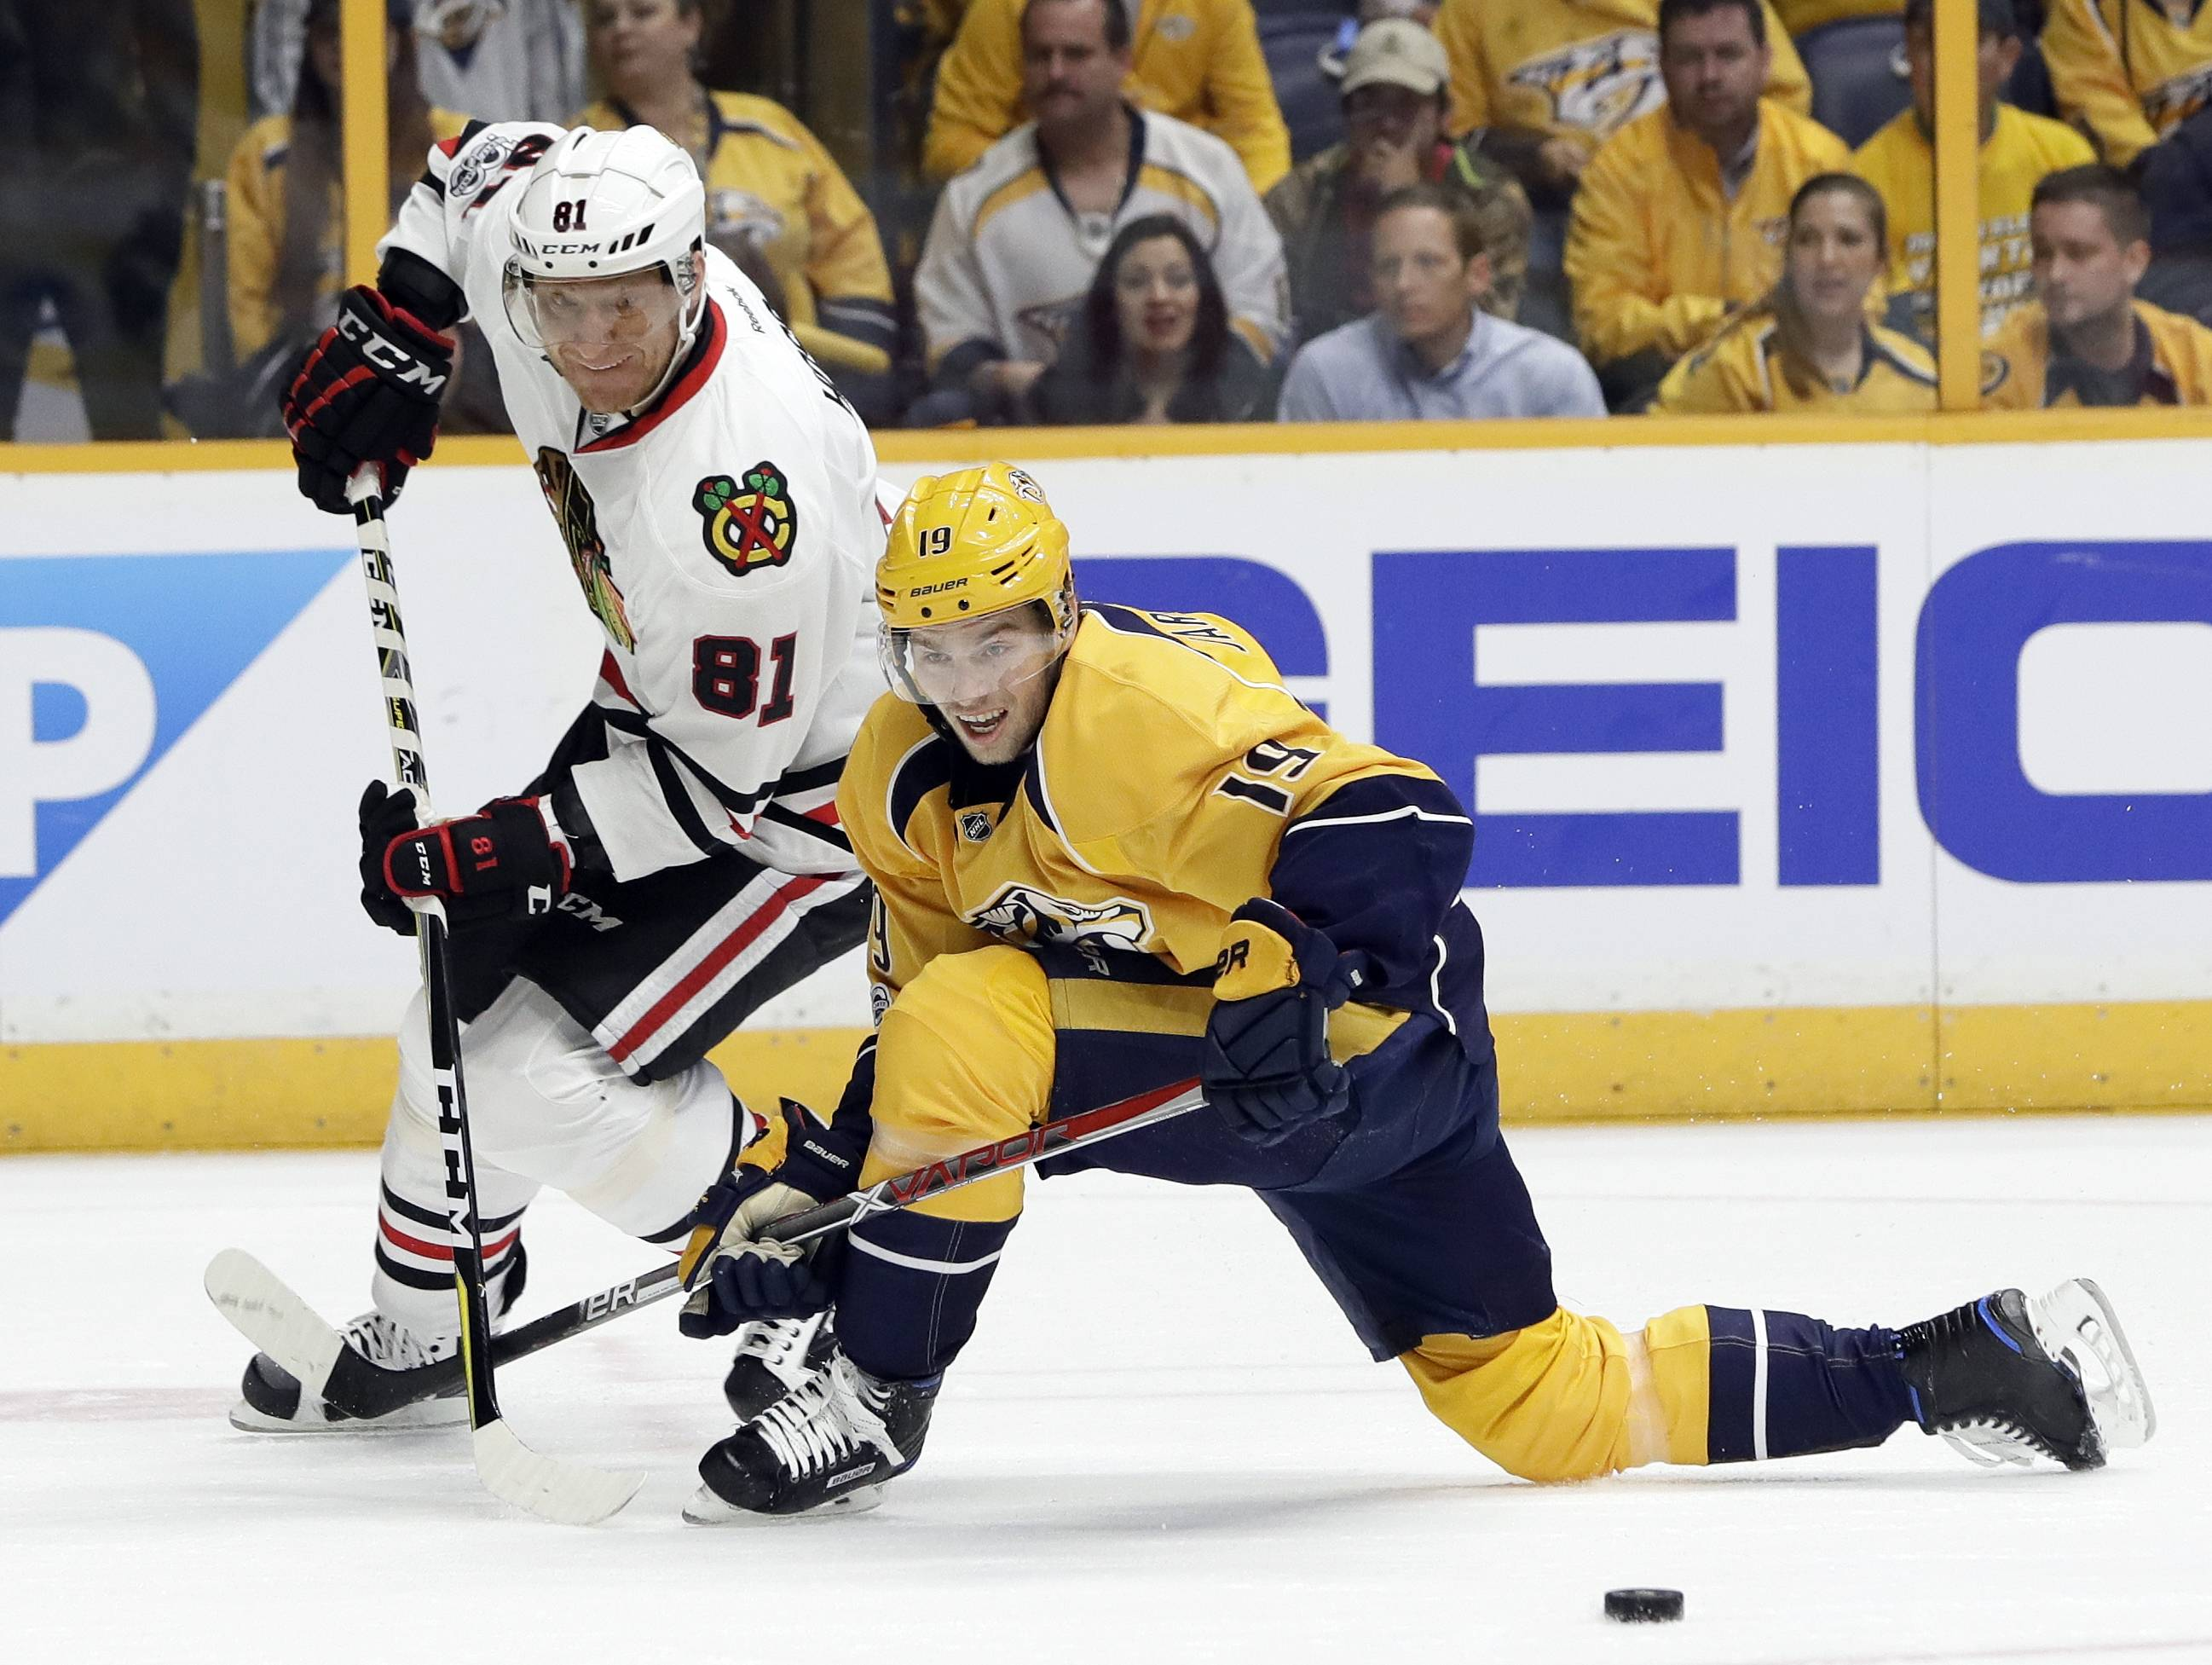 Chicago Blackhawks right wing Marian Hossa (81), of Slovakia, passes the puck past Nashville Predators center Calle Jarnkrok (19), of Sweden, during the first period in Game 3 of a first-round NHL hockey playoff series, Monday, April 17, 2017, in Nashville, Tenn.